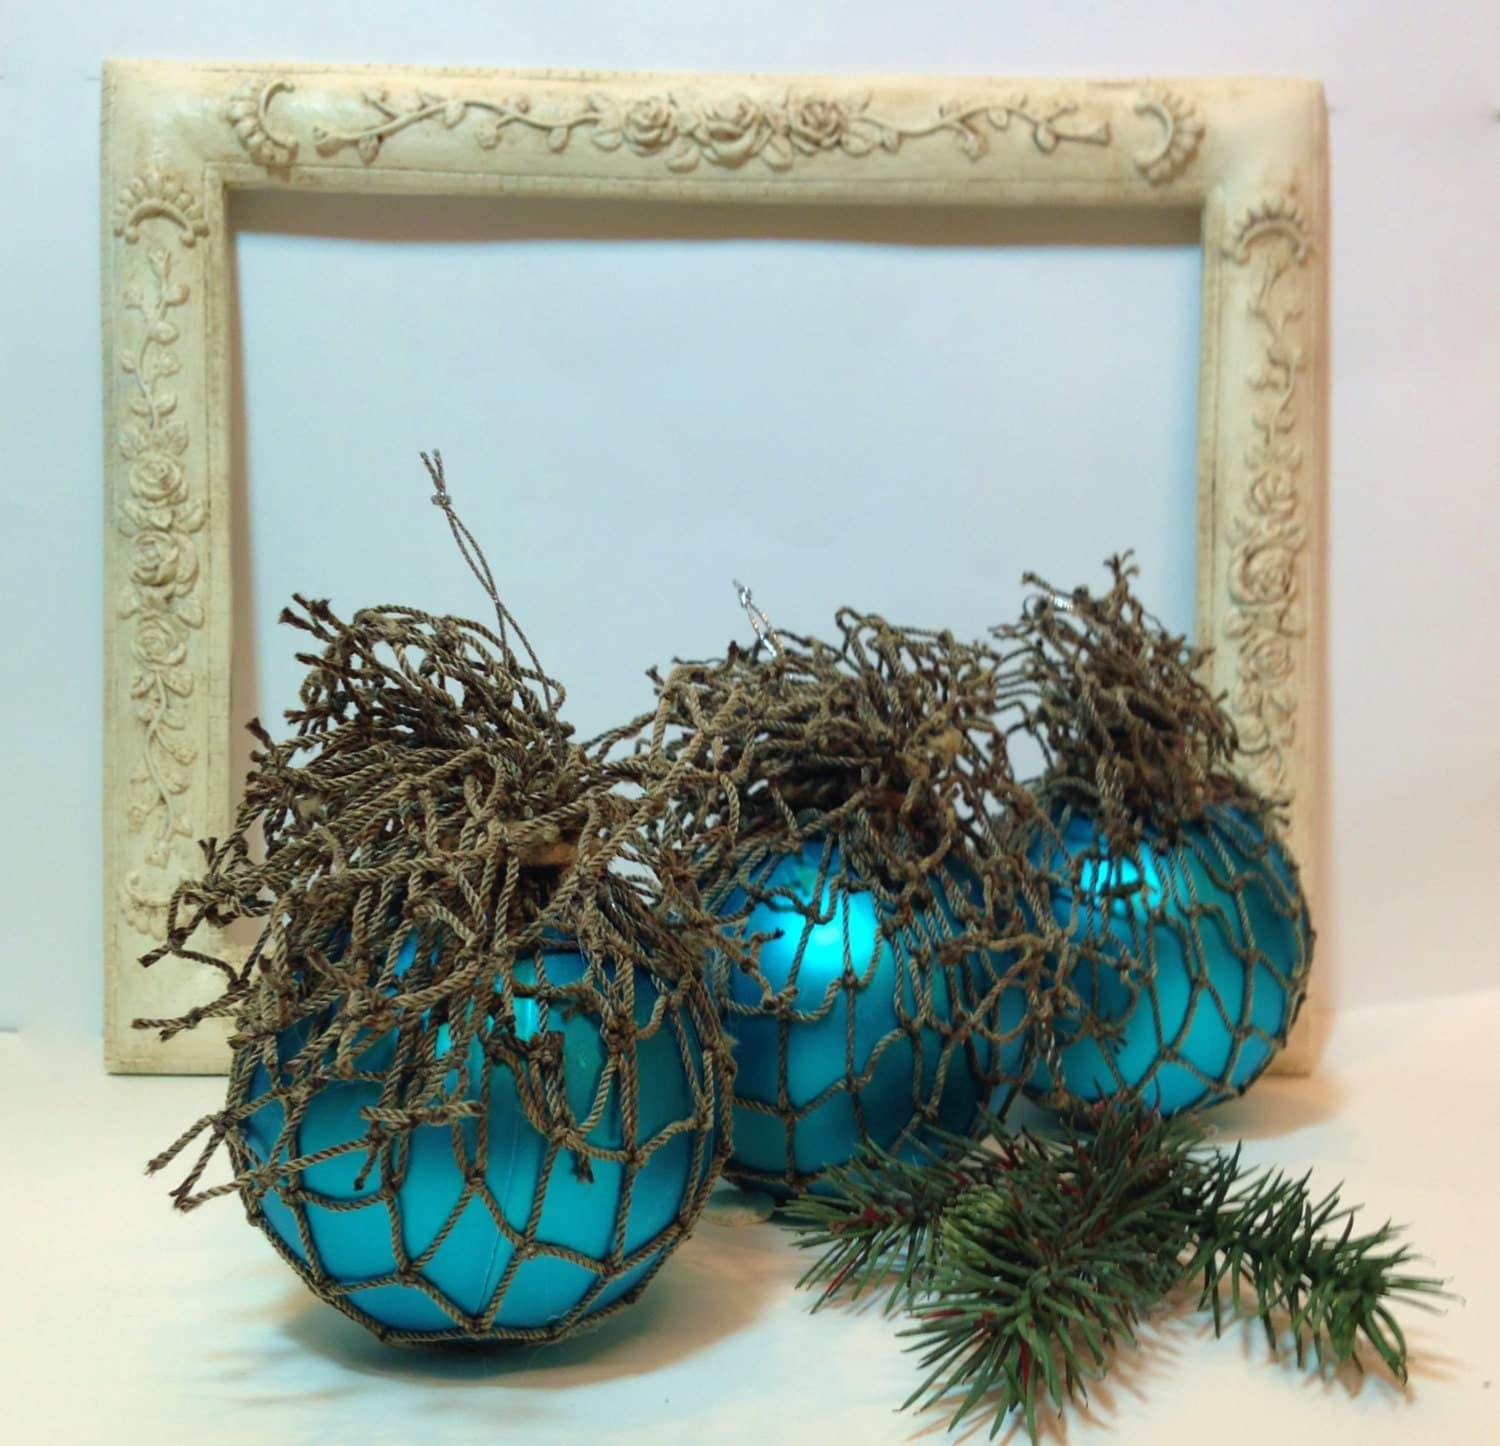 Nautical Christmas Tree Ornaments in Turquoise Blue Seaside Inspired Christmas Decor, Beach Decor - northandsouthshabby